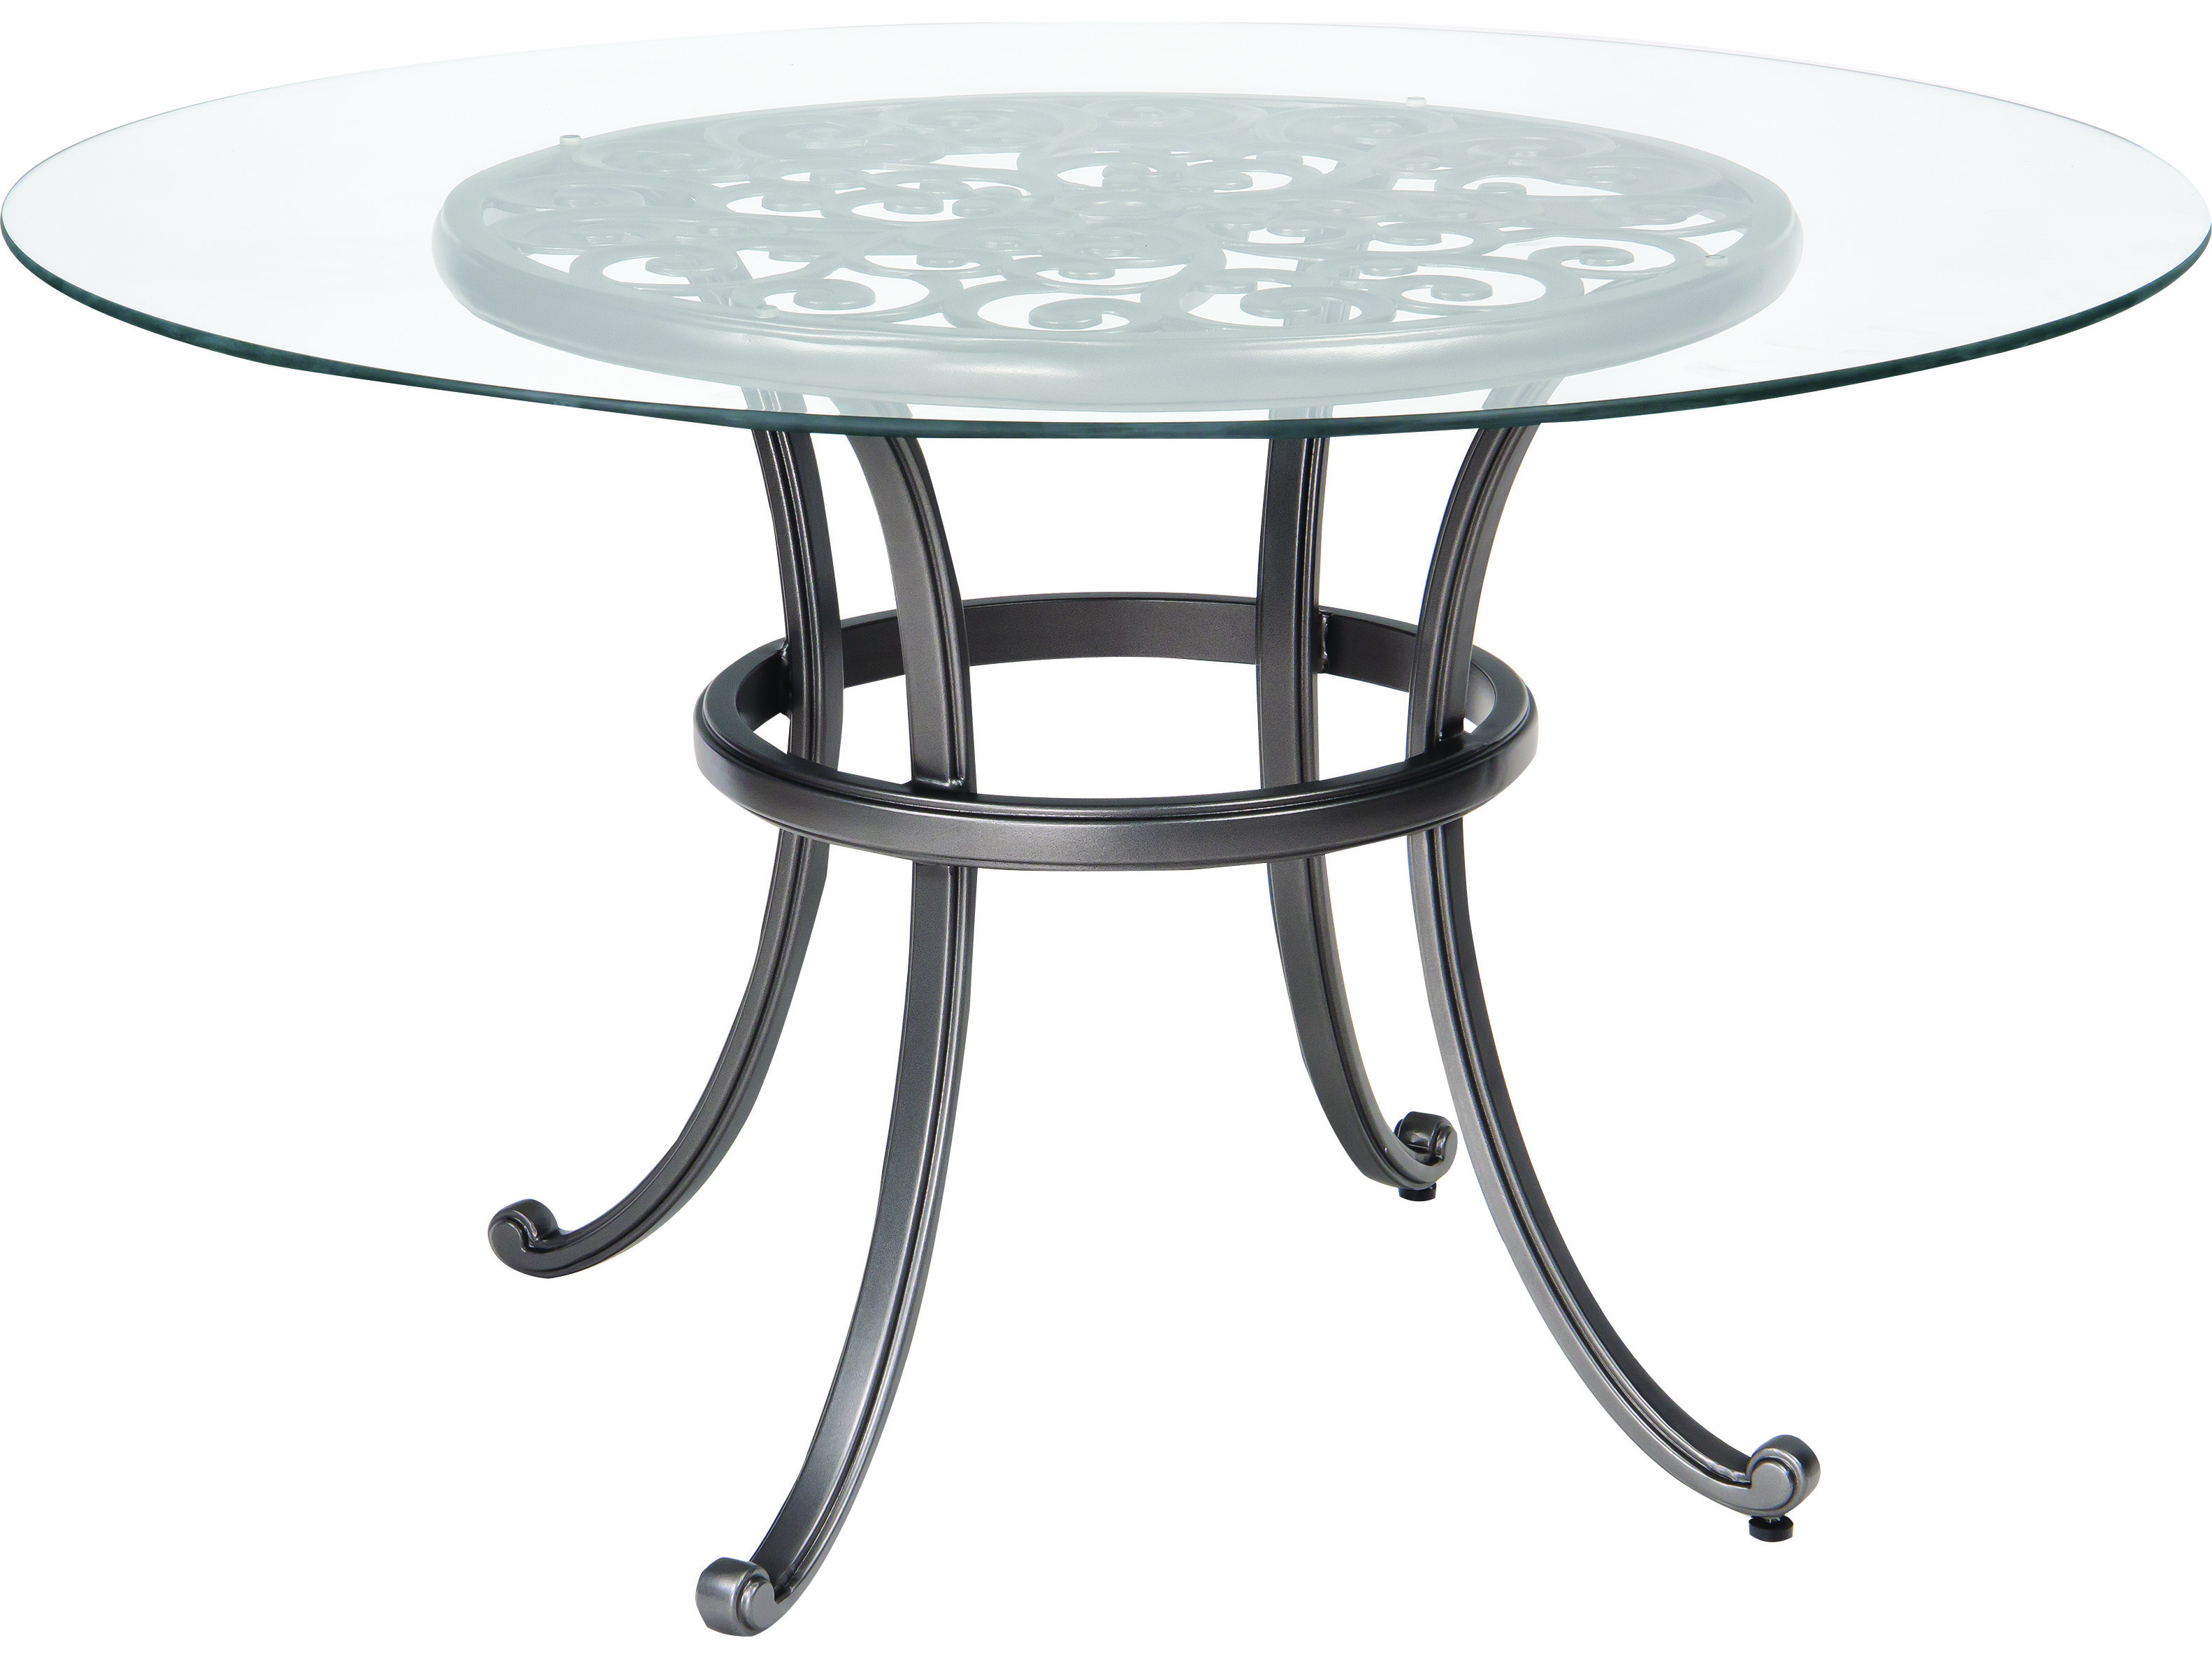 Woodard new orleans cast aluminum 48 round glass top table for Glass top outdoor dining table